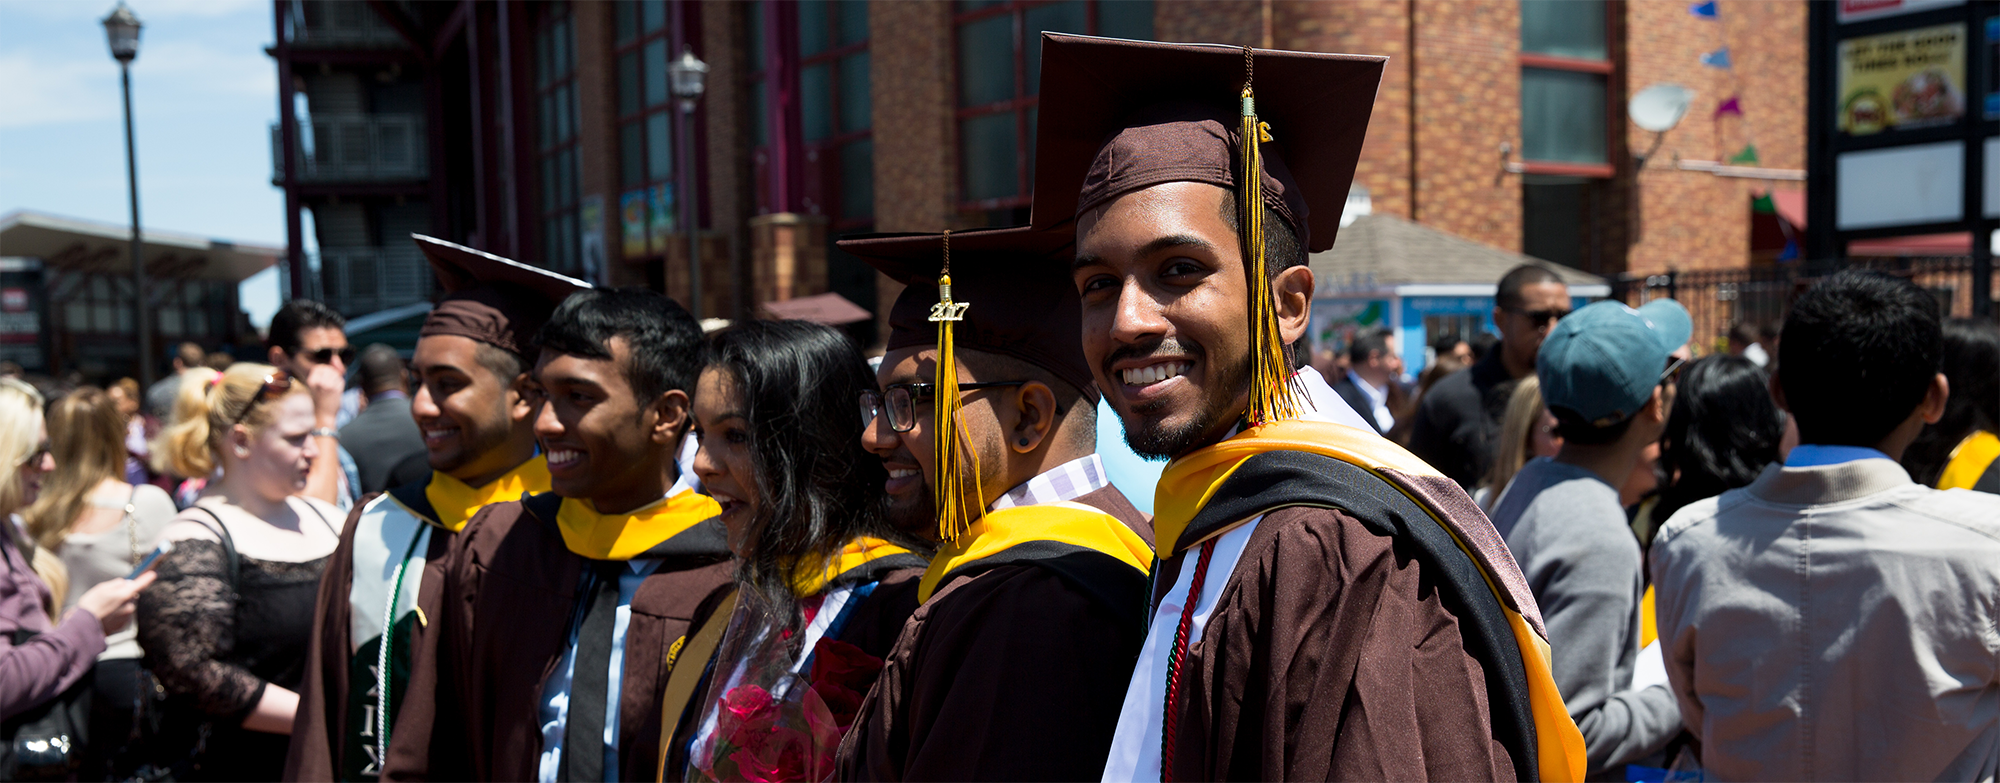 Adelphi graduate smiles in the crowd